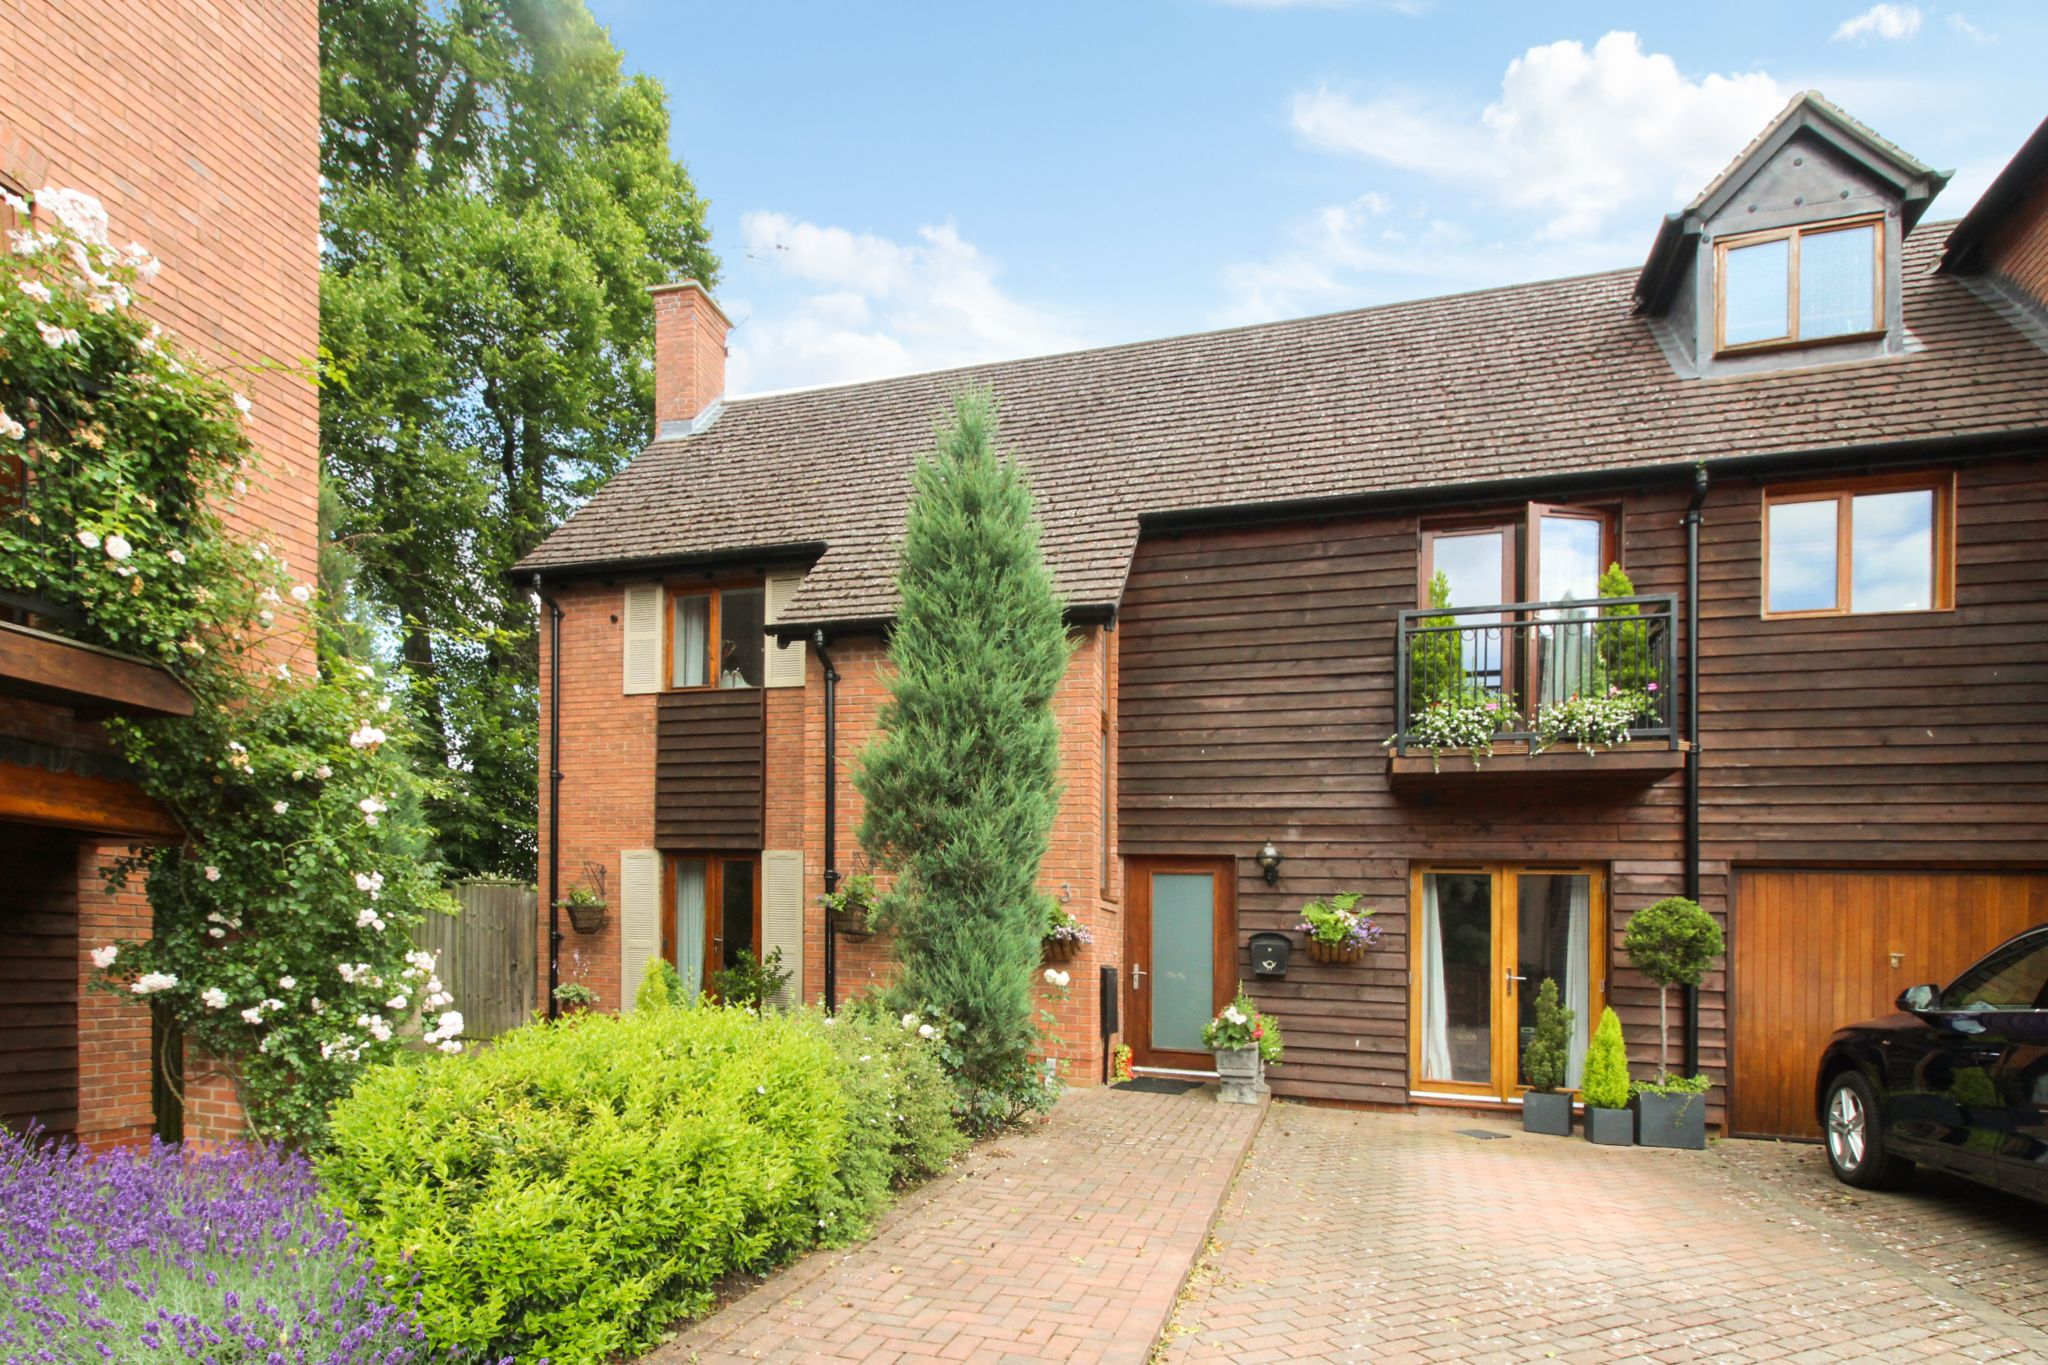 3 bedroom semi-detached house SSTC in Solihull - Photograph 1.